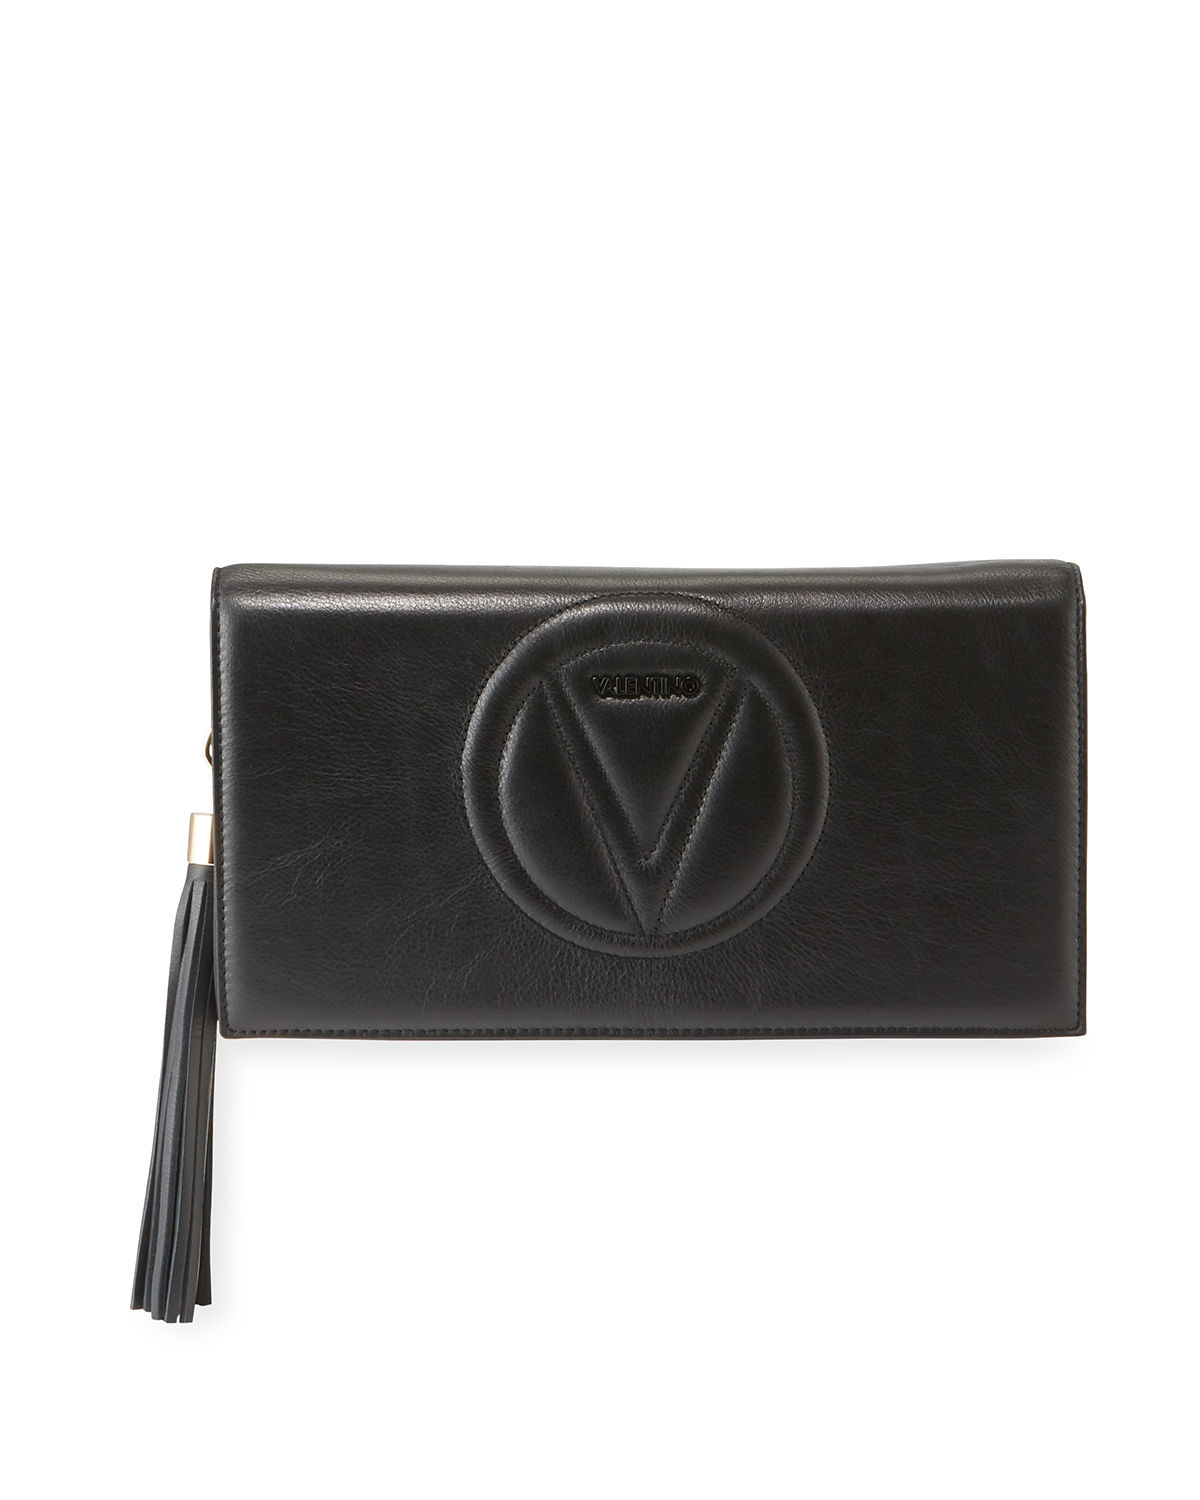 size 40 new images of best selection of 2019 Lena Leather Tassel Clutch Bag in Black